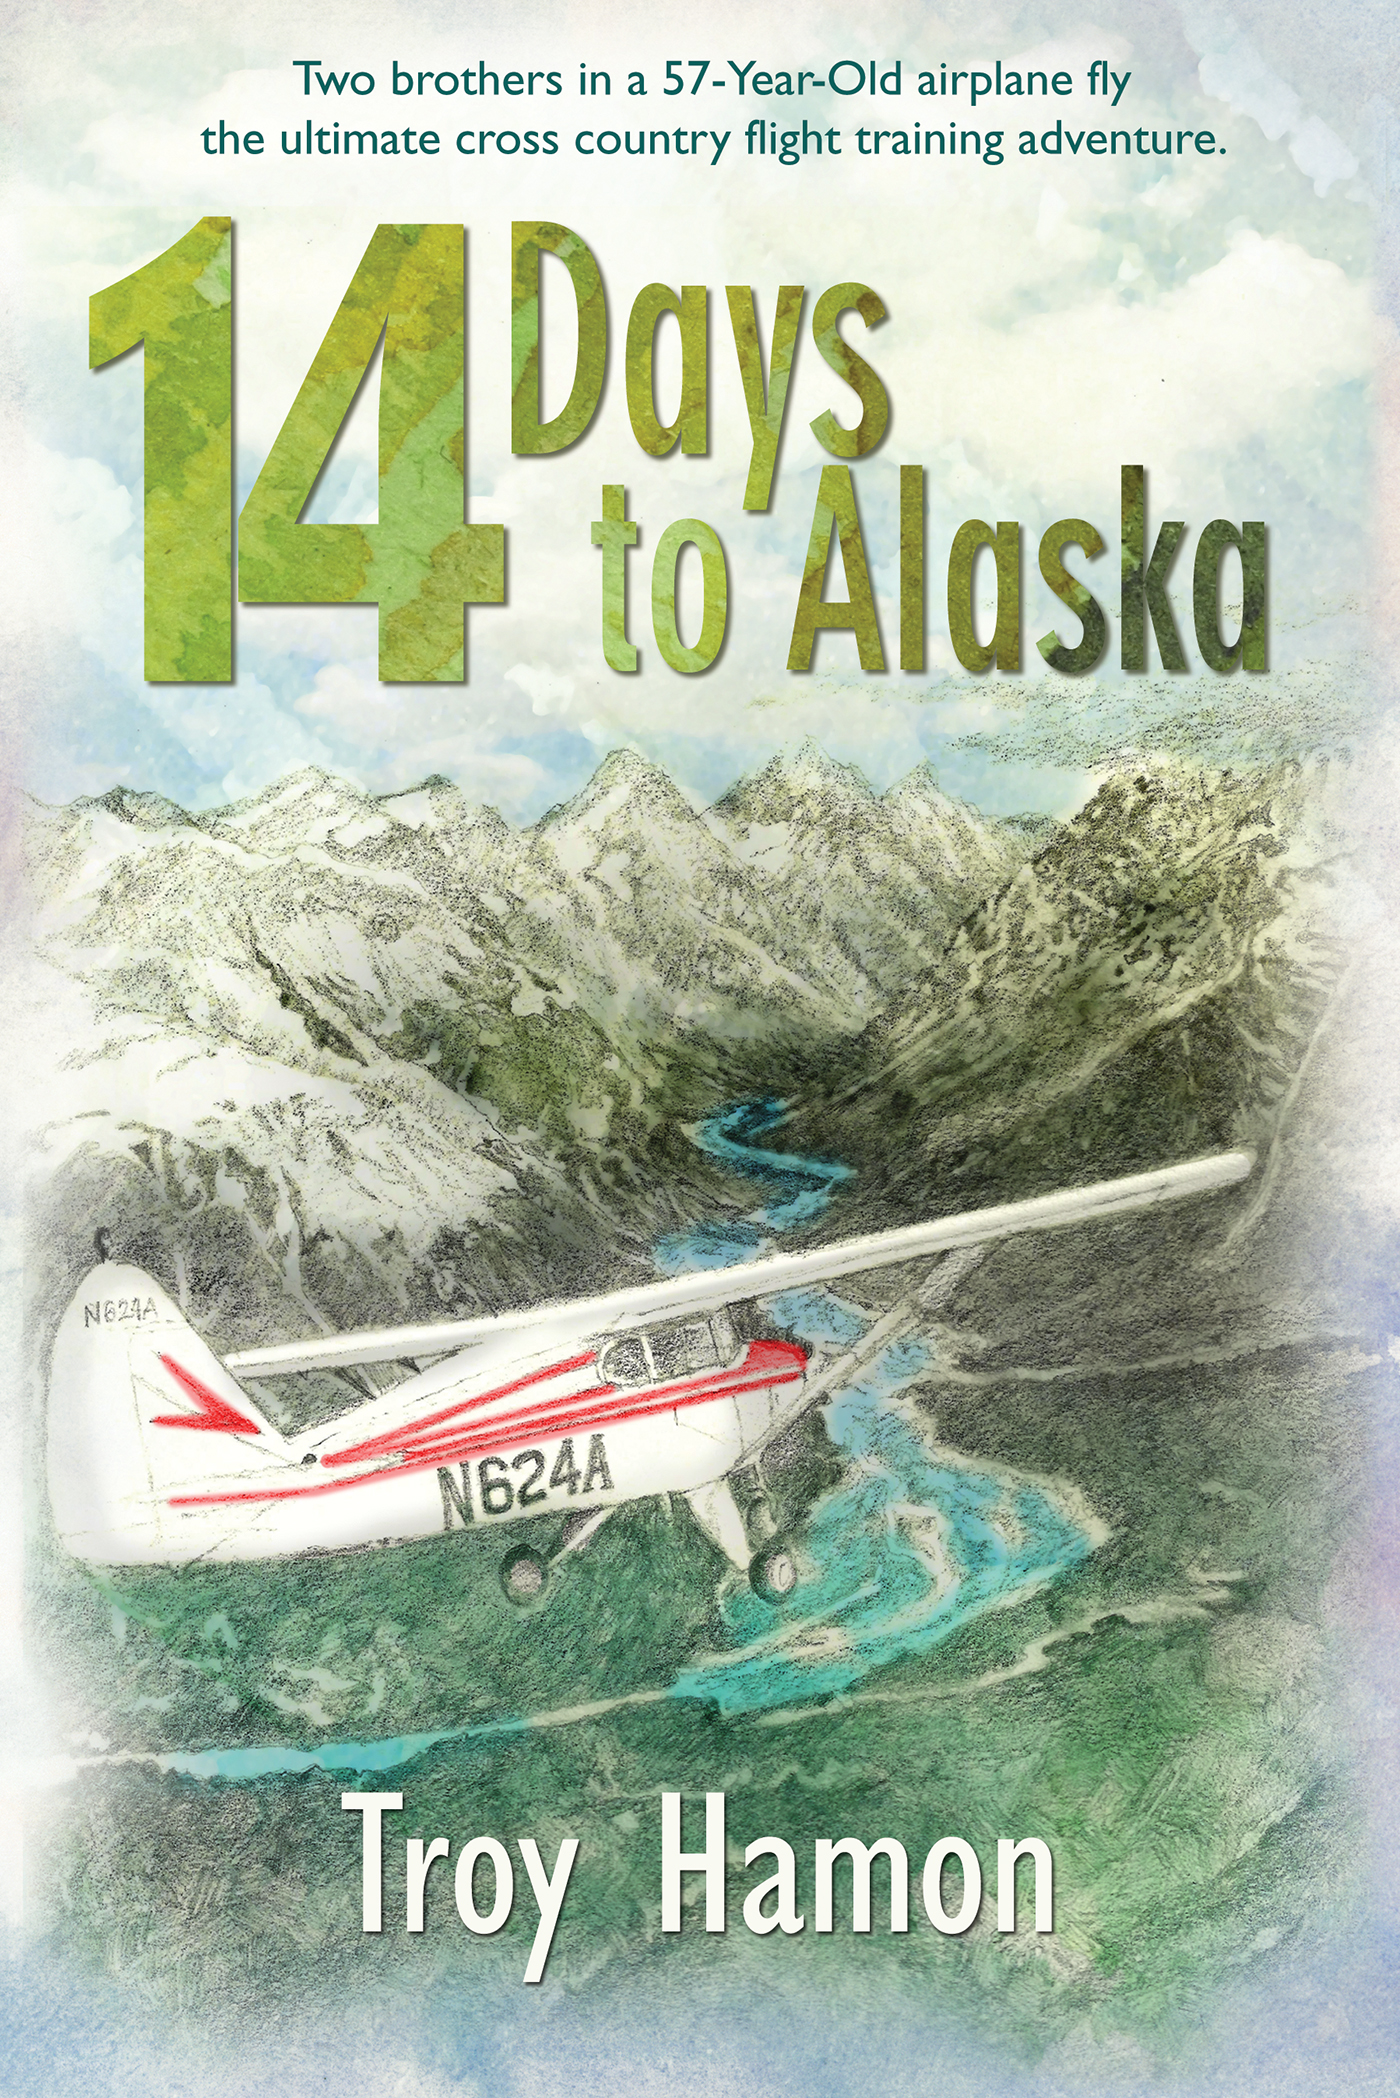 14 Days to Alaska Two Brothers in a 57-Year-Old Airplane Fly the Ultimate Cross Country Flight Training Adventure